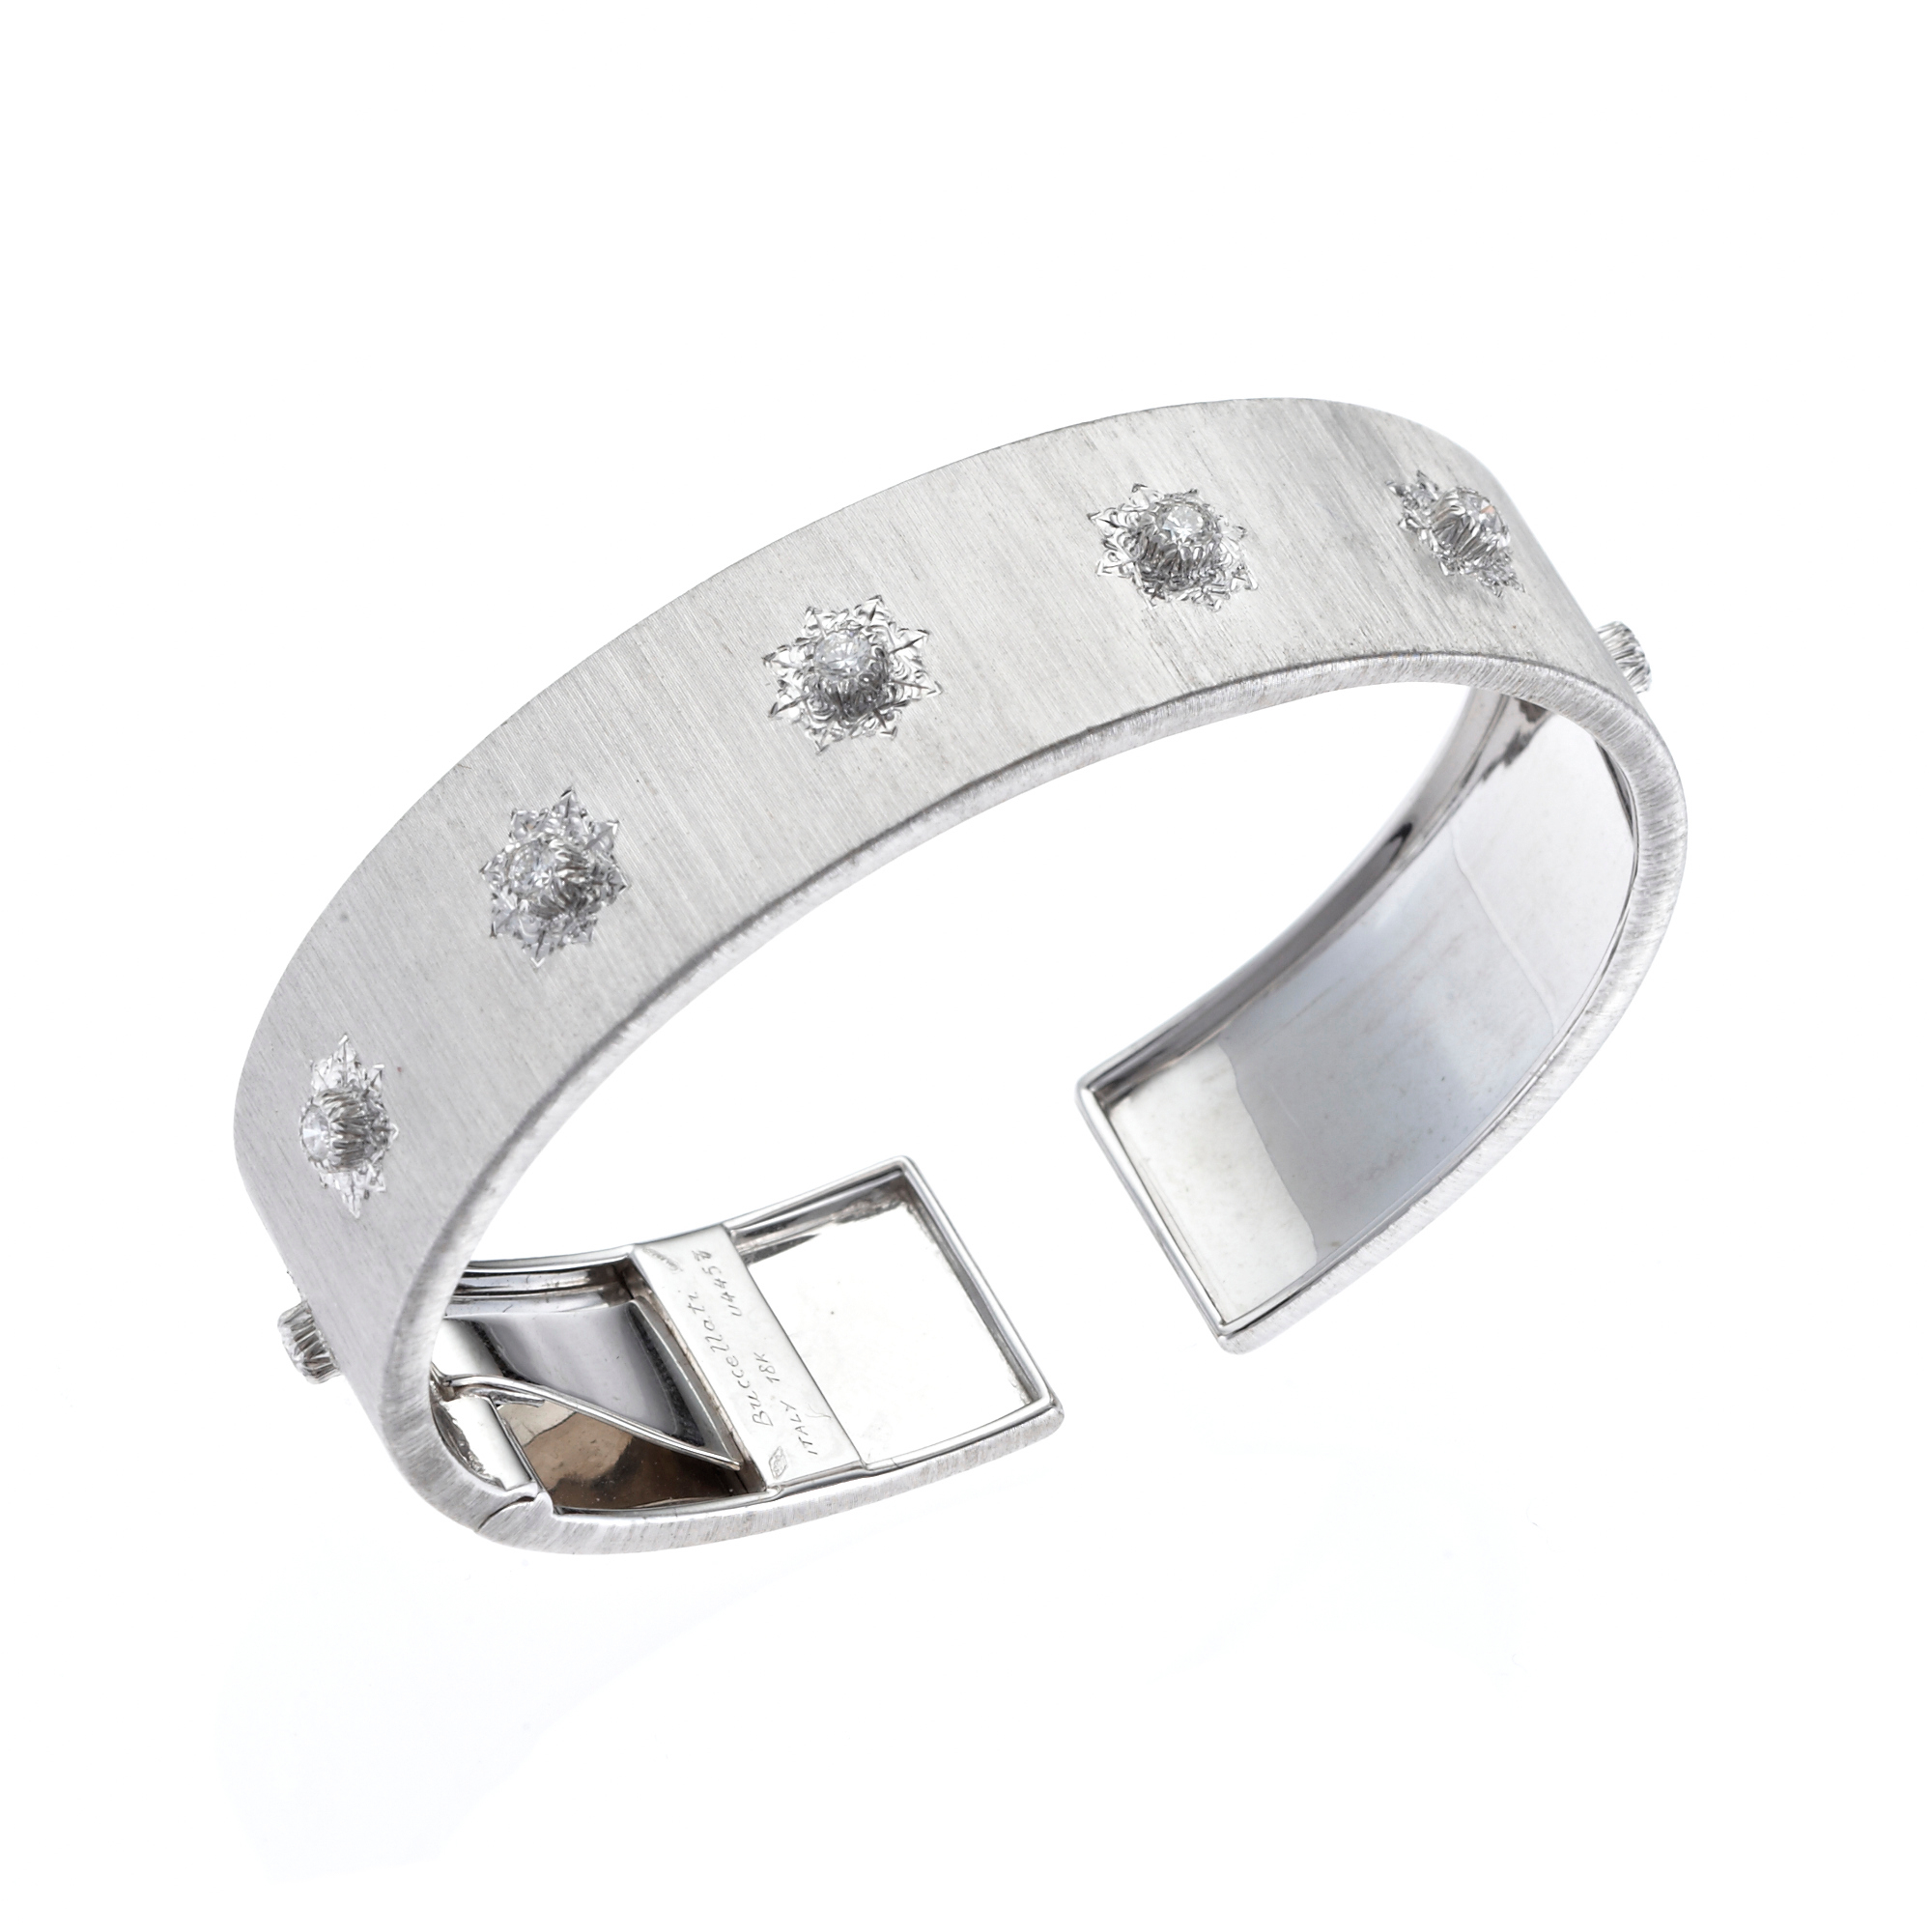 Buccellati Macri Classica 15mm Straight Cuff in White Gold